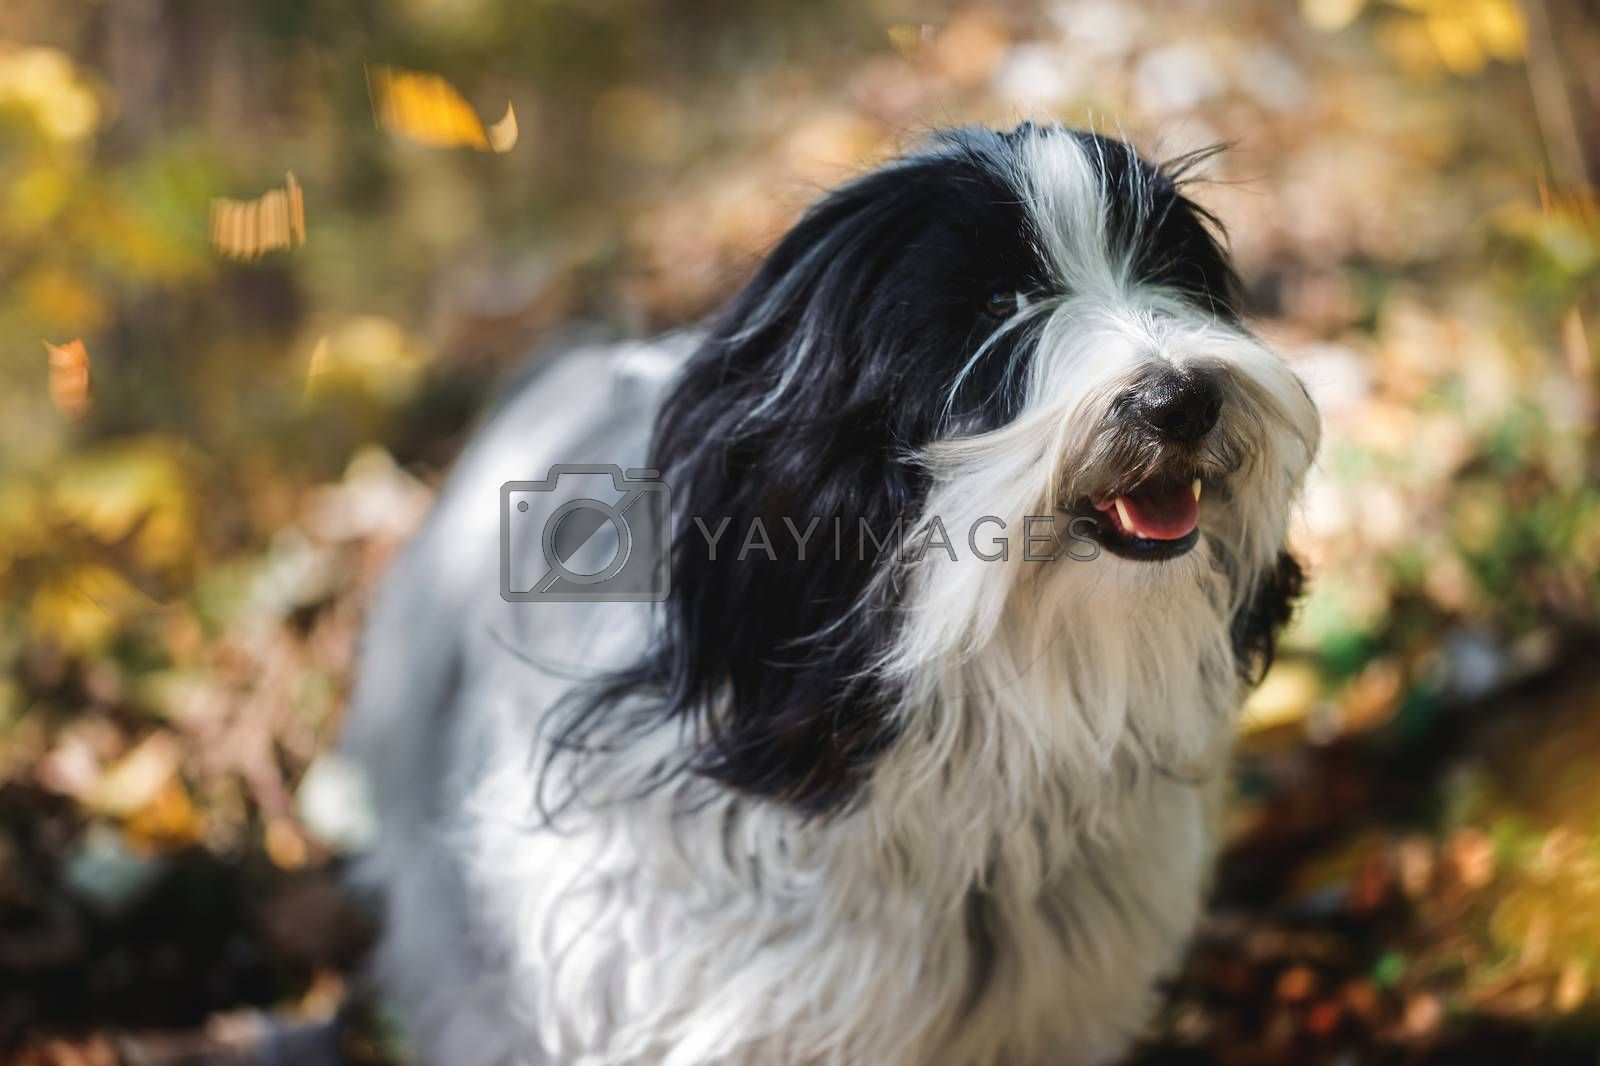 Smiling Dog. Tibetan terrier dog standing  in the forest with a bunch of fallen leaves surrounding him. Selective focus, copy space